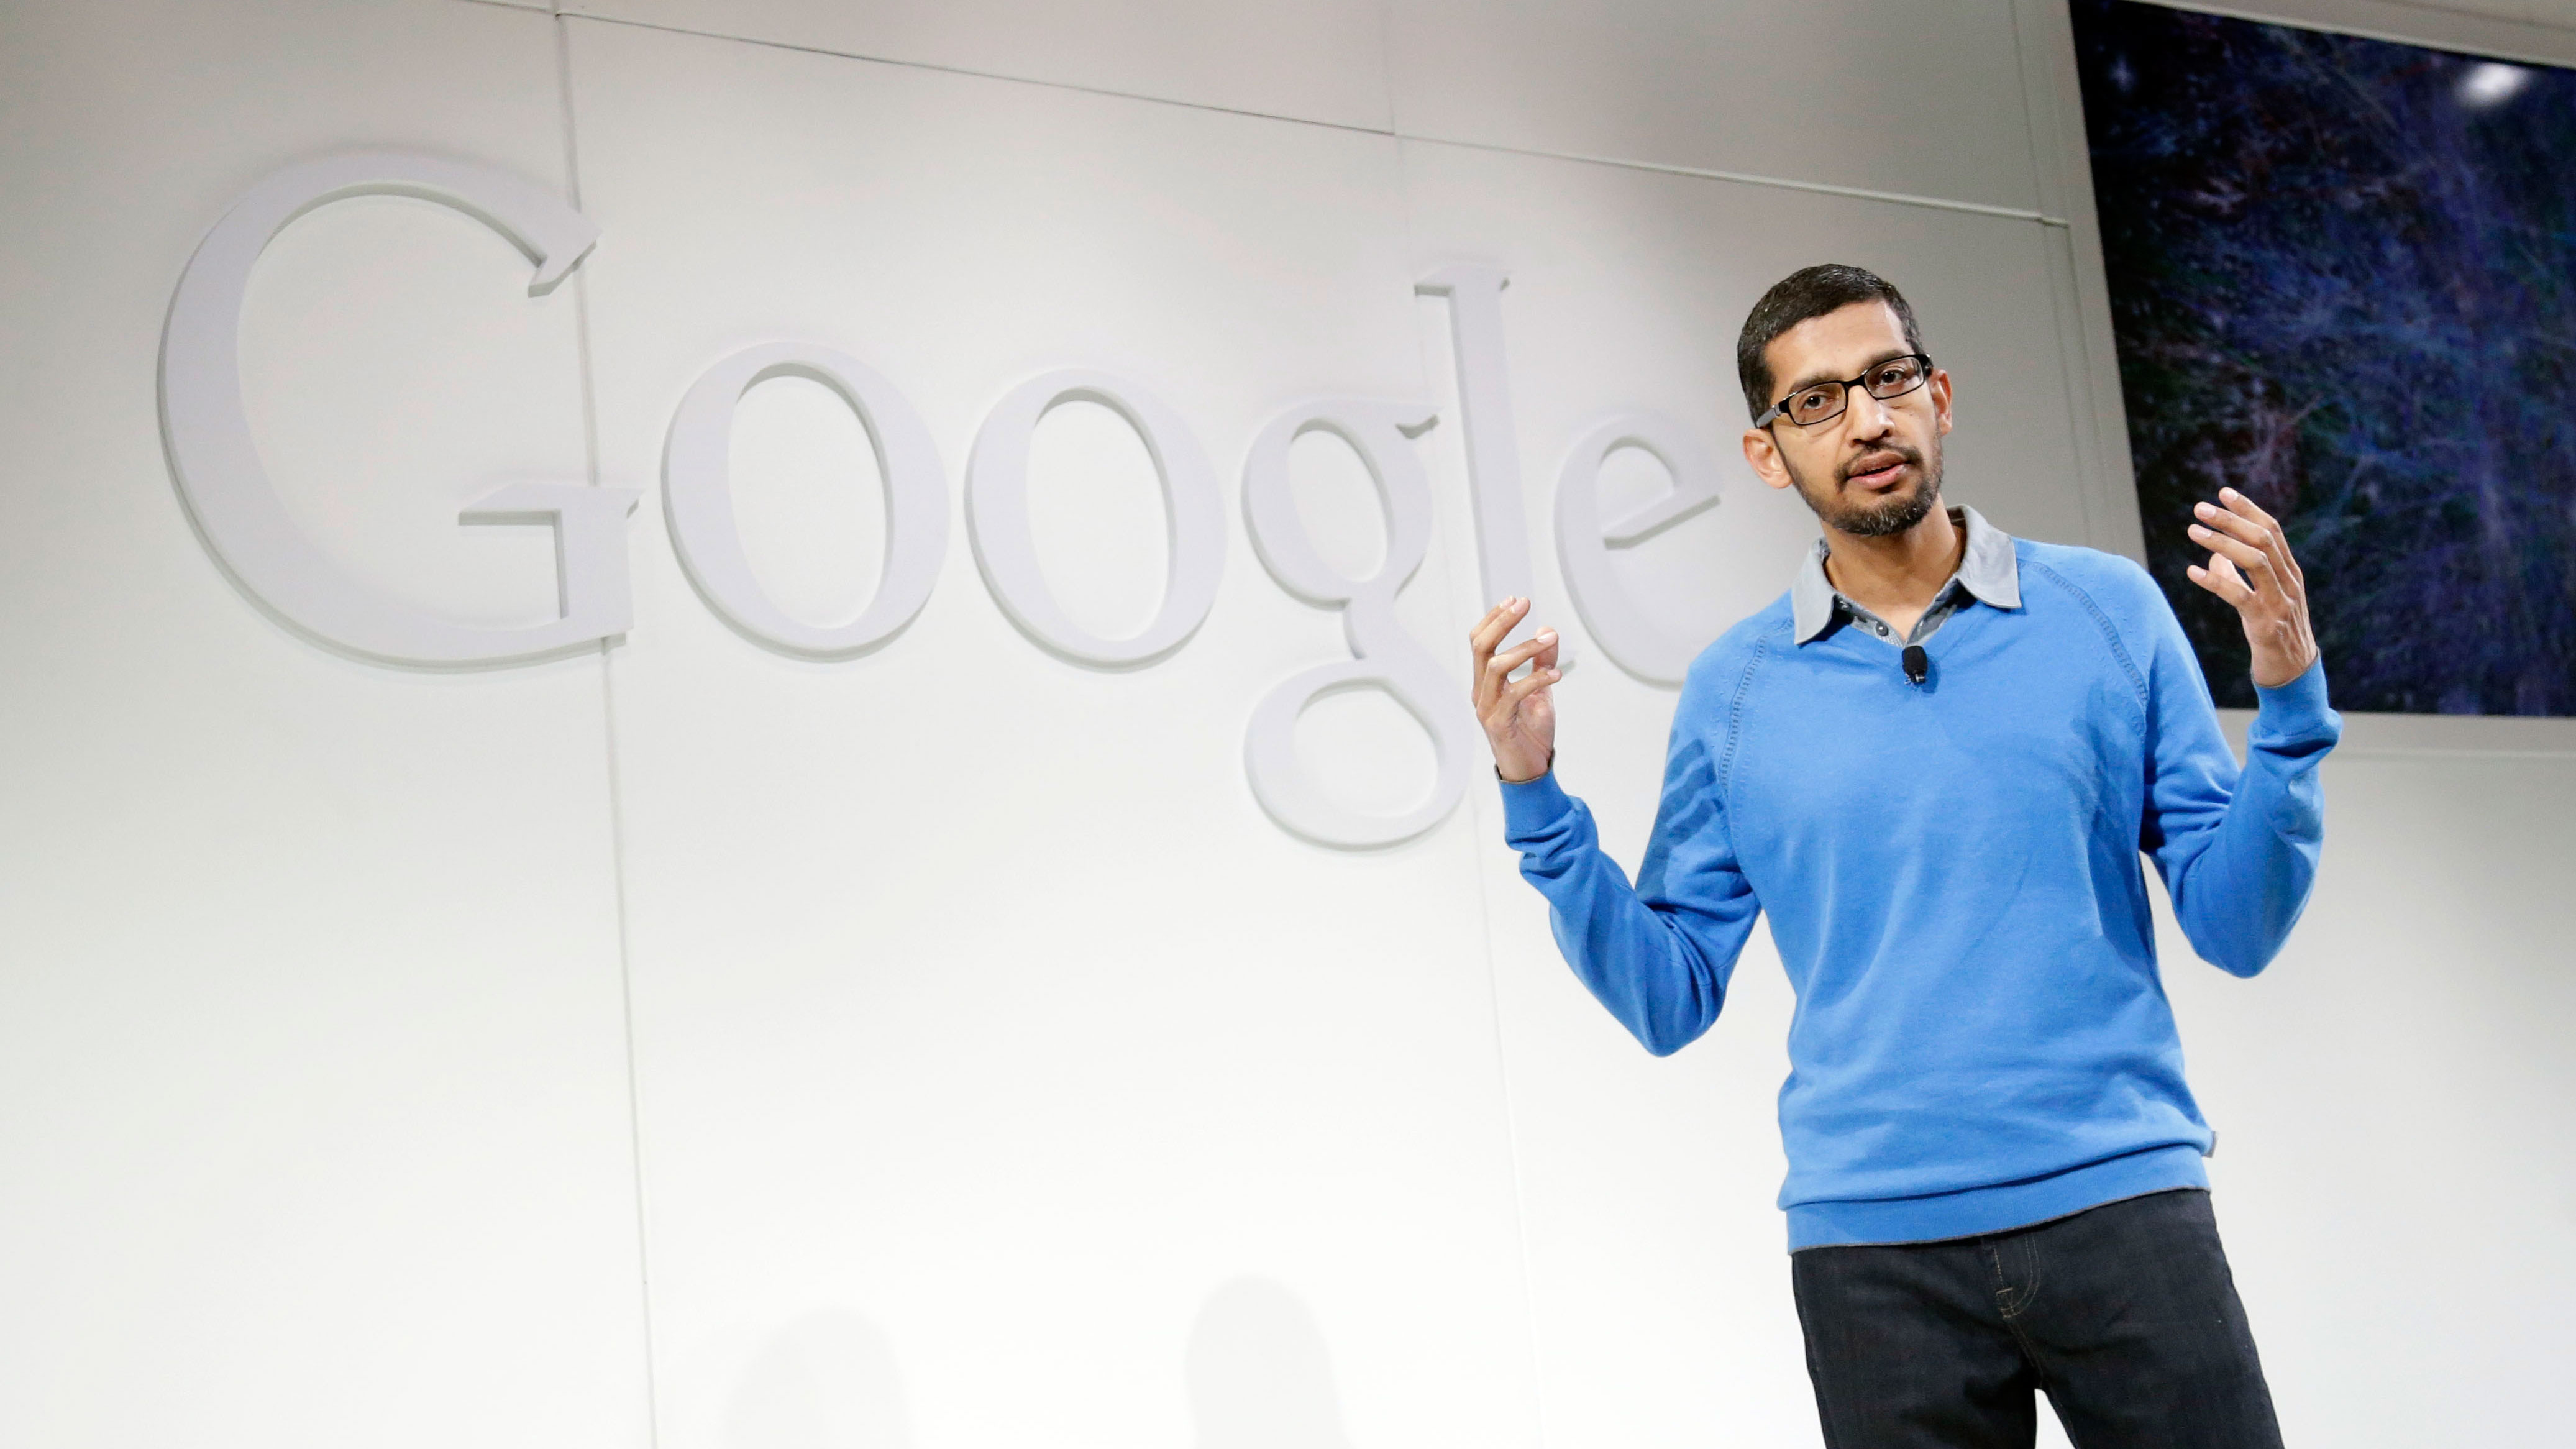 Sundar Pichai on Wednesday, July 24, 2013, in San Francisco. (AP Photo/Marcio Jose Sanchez)